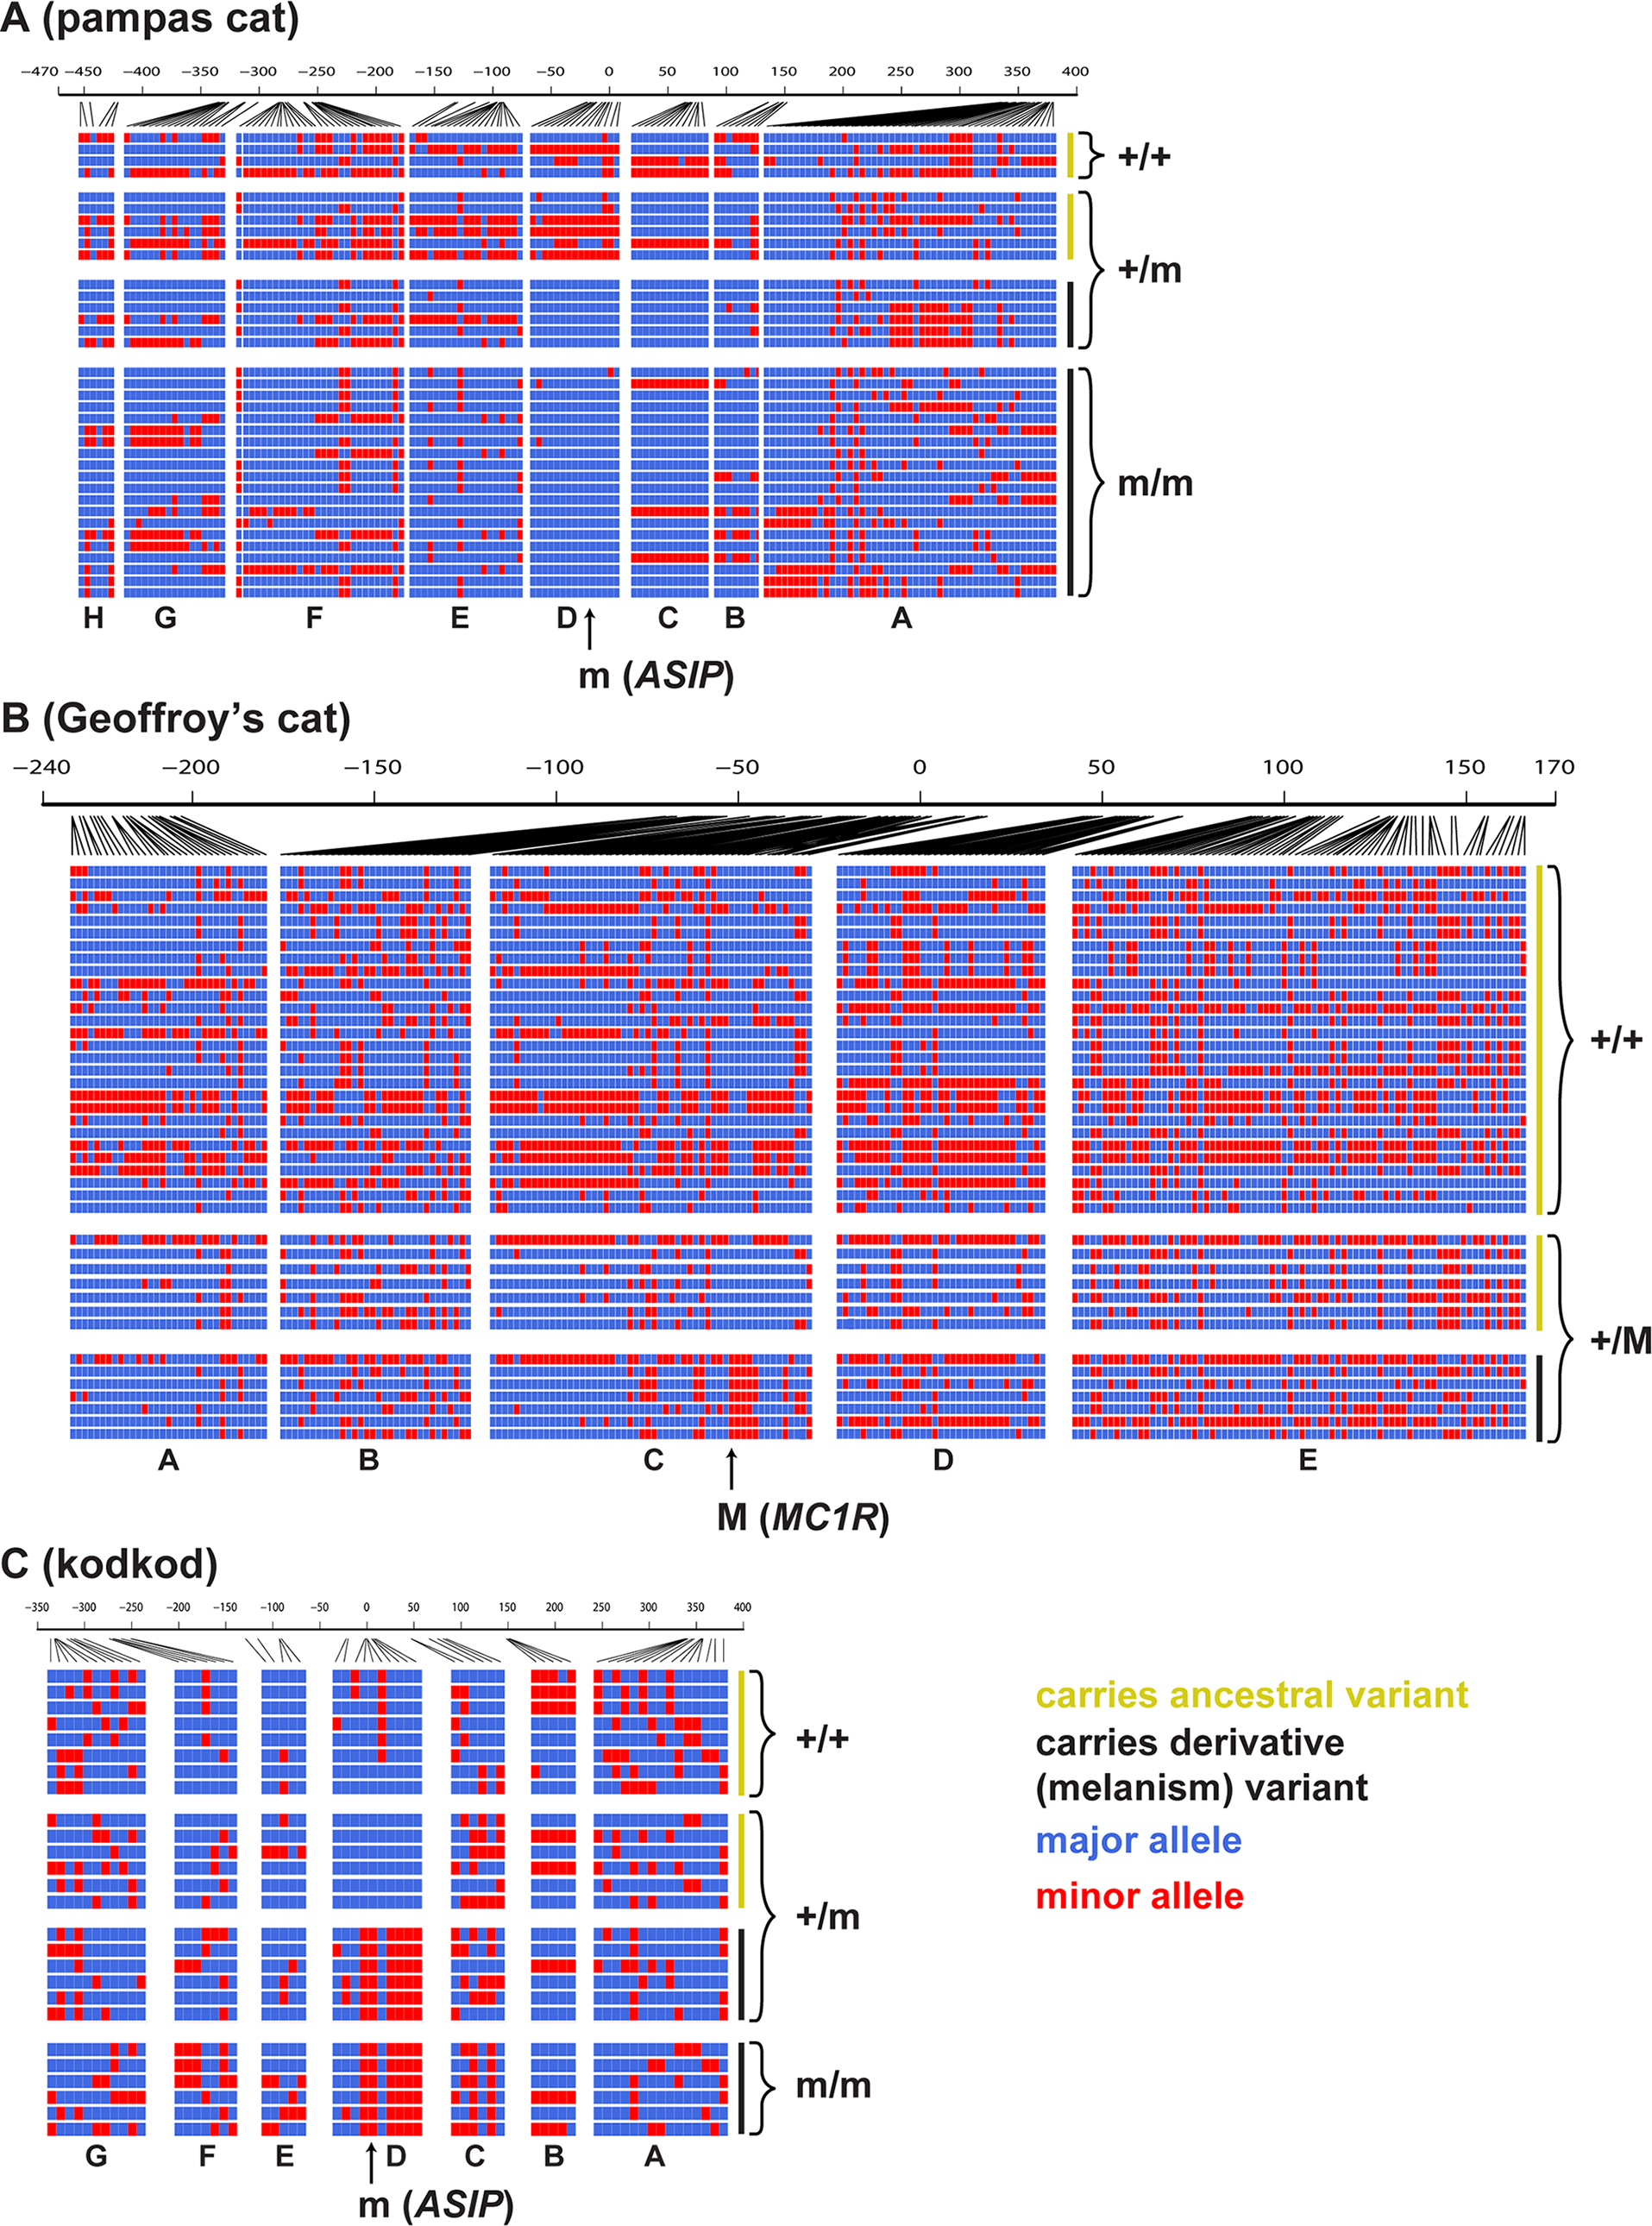 Haplotype structures for melanism loci for pampas cat (A), Geoffroy's cat (B), and kodkod (C), arranged according to whether they carry an ancestral (yellow) or derivative (black) allele at the causative position, and whether they were observed in a non-melanistic (+/+, +/m) or melanistic (m/m, +/M) individual.